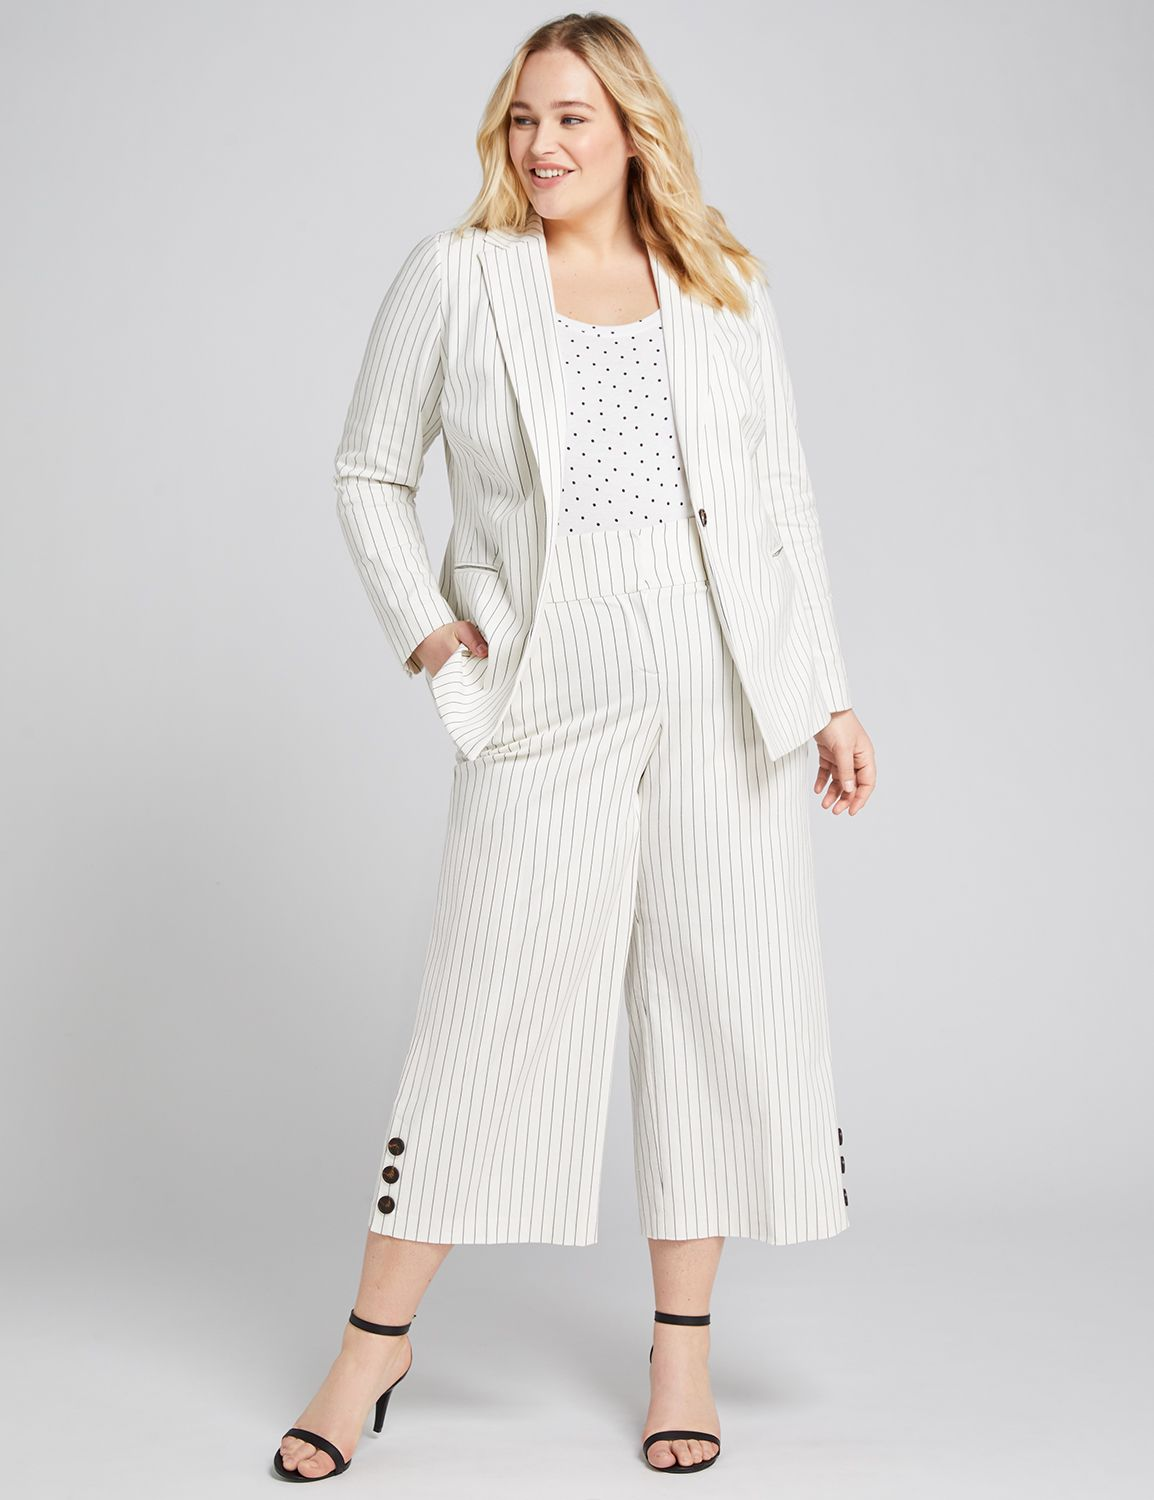 high-rise pants features a no-gap waist construction with slimming Power Pockets to secretly smooth your tummy. Stay cool in these crops with a wide-leg silhouette and a polished pinstripe print. The super-chic button detail at the hem adds the perfect style bonus. Belt loops. Four pockets. Zip fly. Double bar & slide closure with inner button.